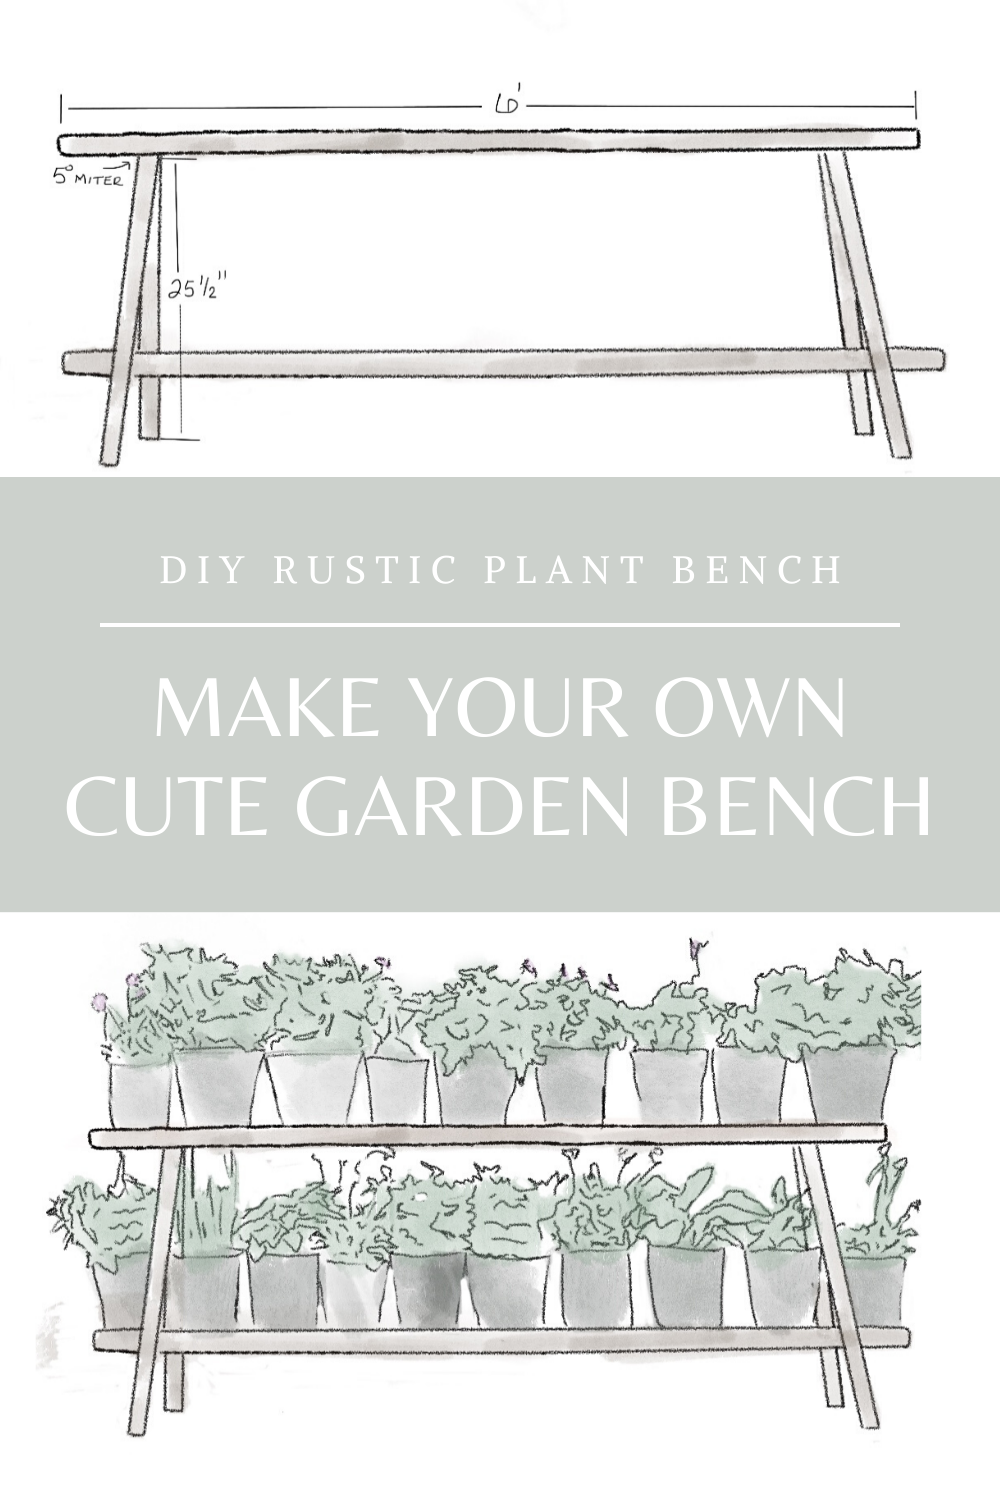 DIY Rustic Plant Bench Pinterest Graphic